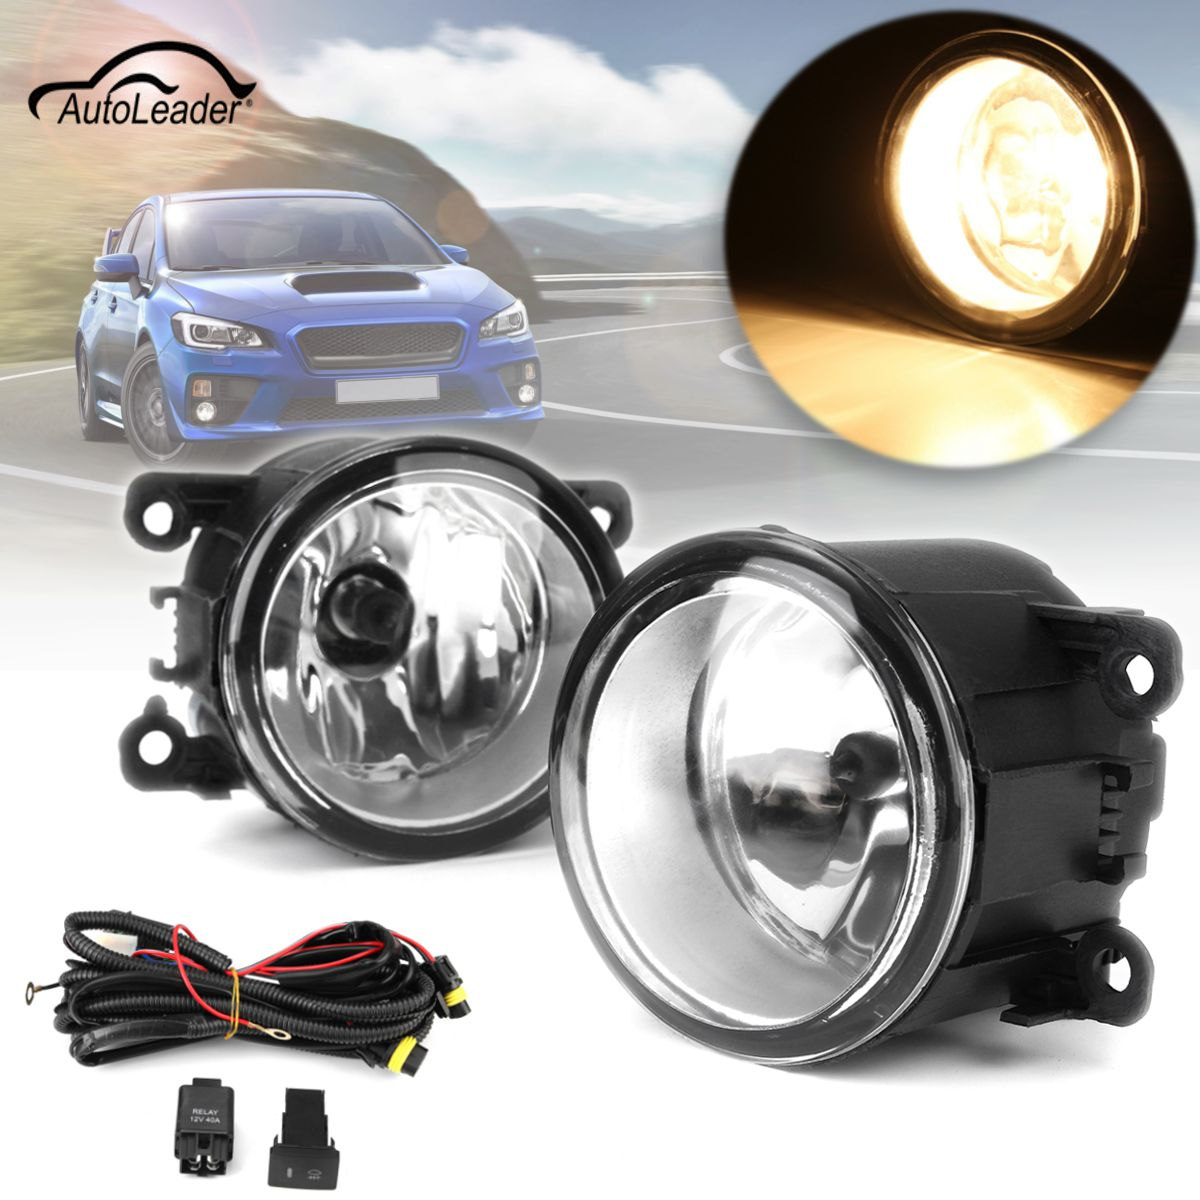 For Subaru Impreza/WRX/WRX STI/XV 1 Pair H11 Car Front Fog Light Clear Lens With Wiring Kit 02 03 impreza wrx sti gda gdb gen 7 ju headlights eyebrows eyelids